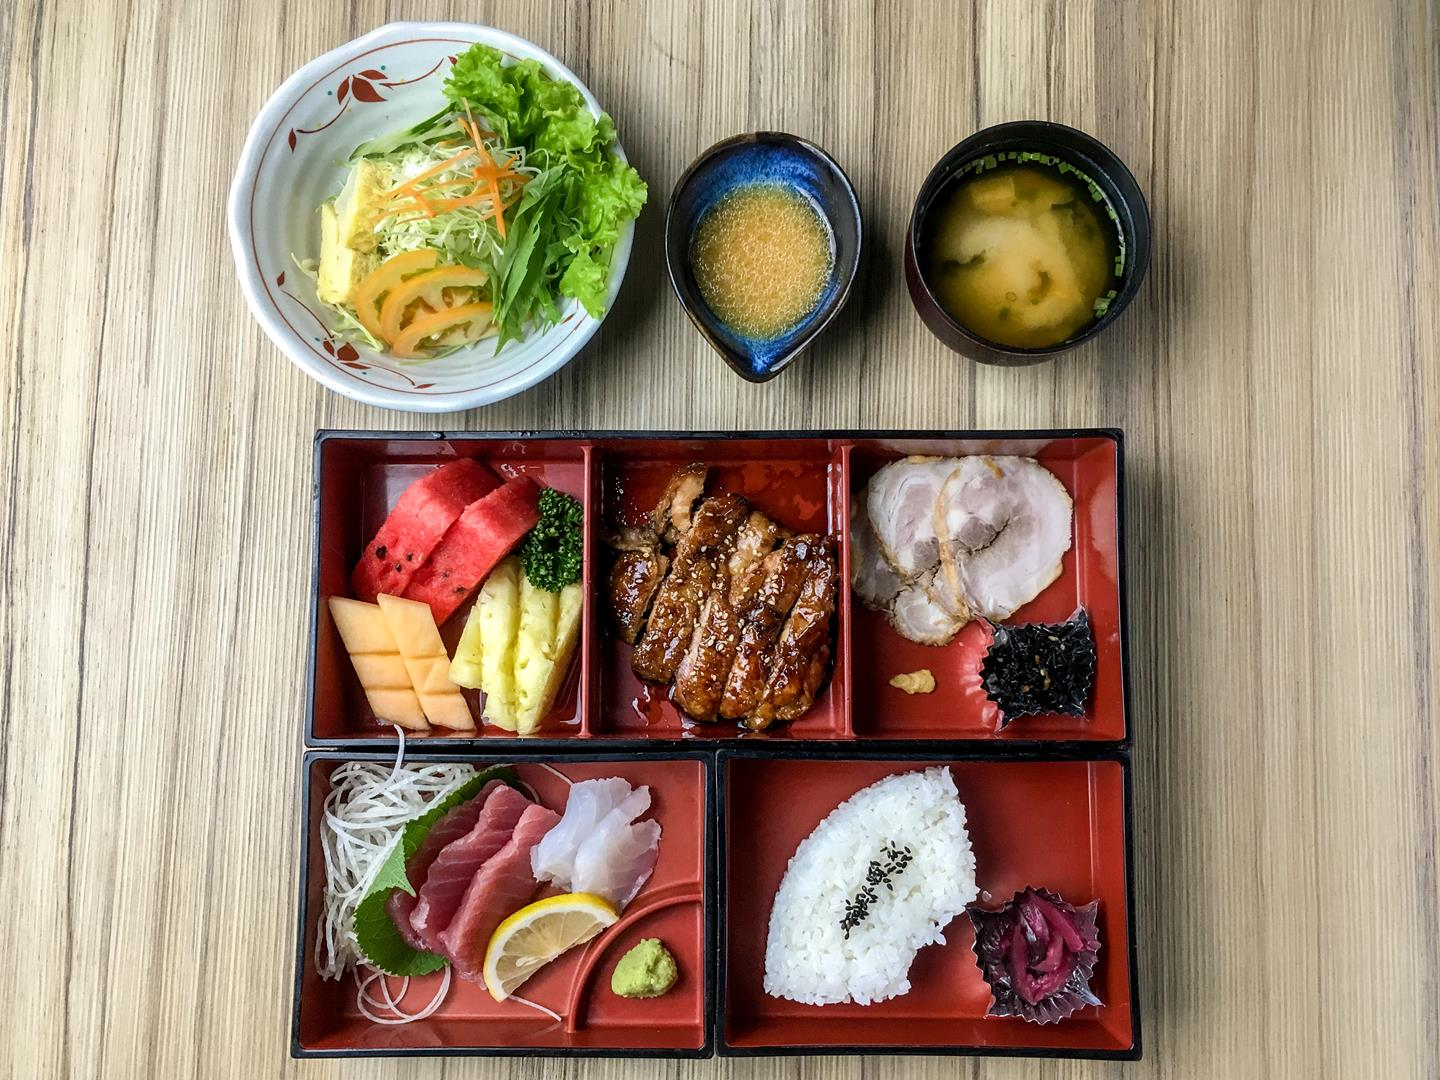 The special take bento box is priced at Php582 (VAT inclusive). A great value-for-money deal